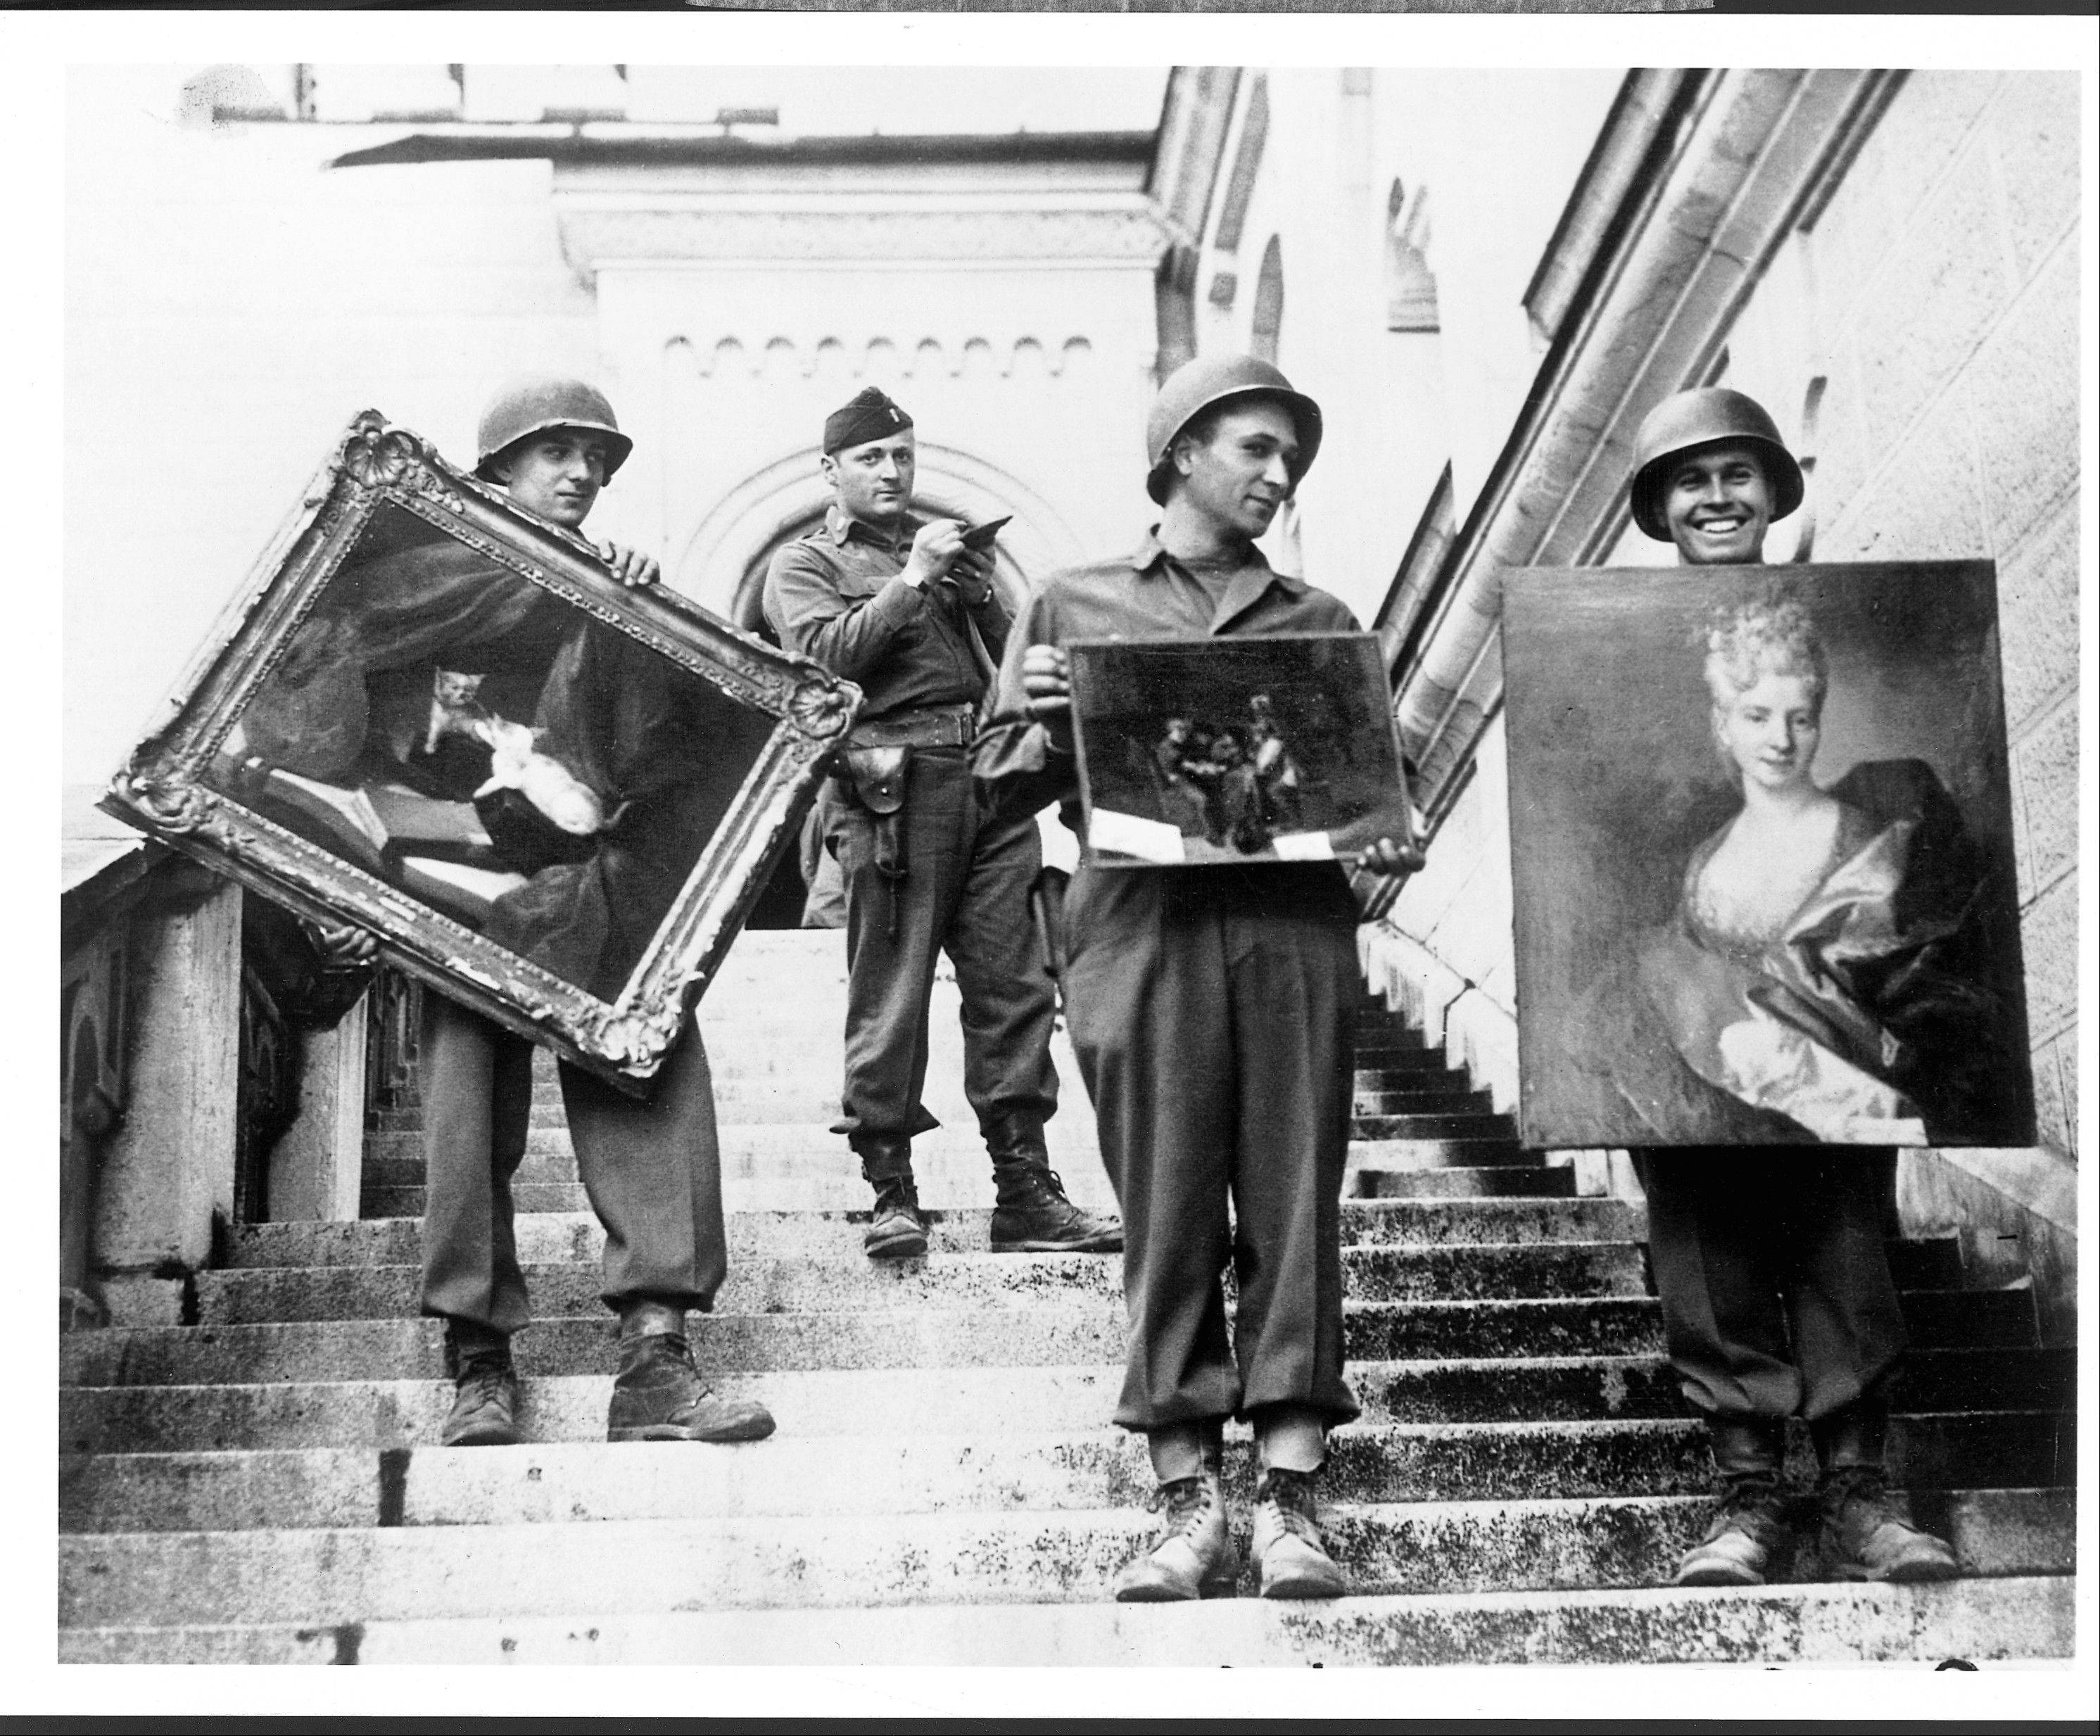 Monuments Man James Rorimer, with notepad, supervises American GI's hand-carrying paintings down the steps of the castle in Neuschwanstein, Germany, in May 1945. The Monuments Men worked to save cultural treasures during World War II.